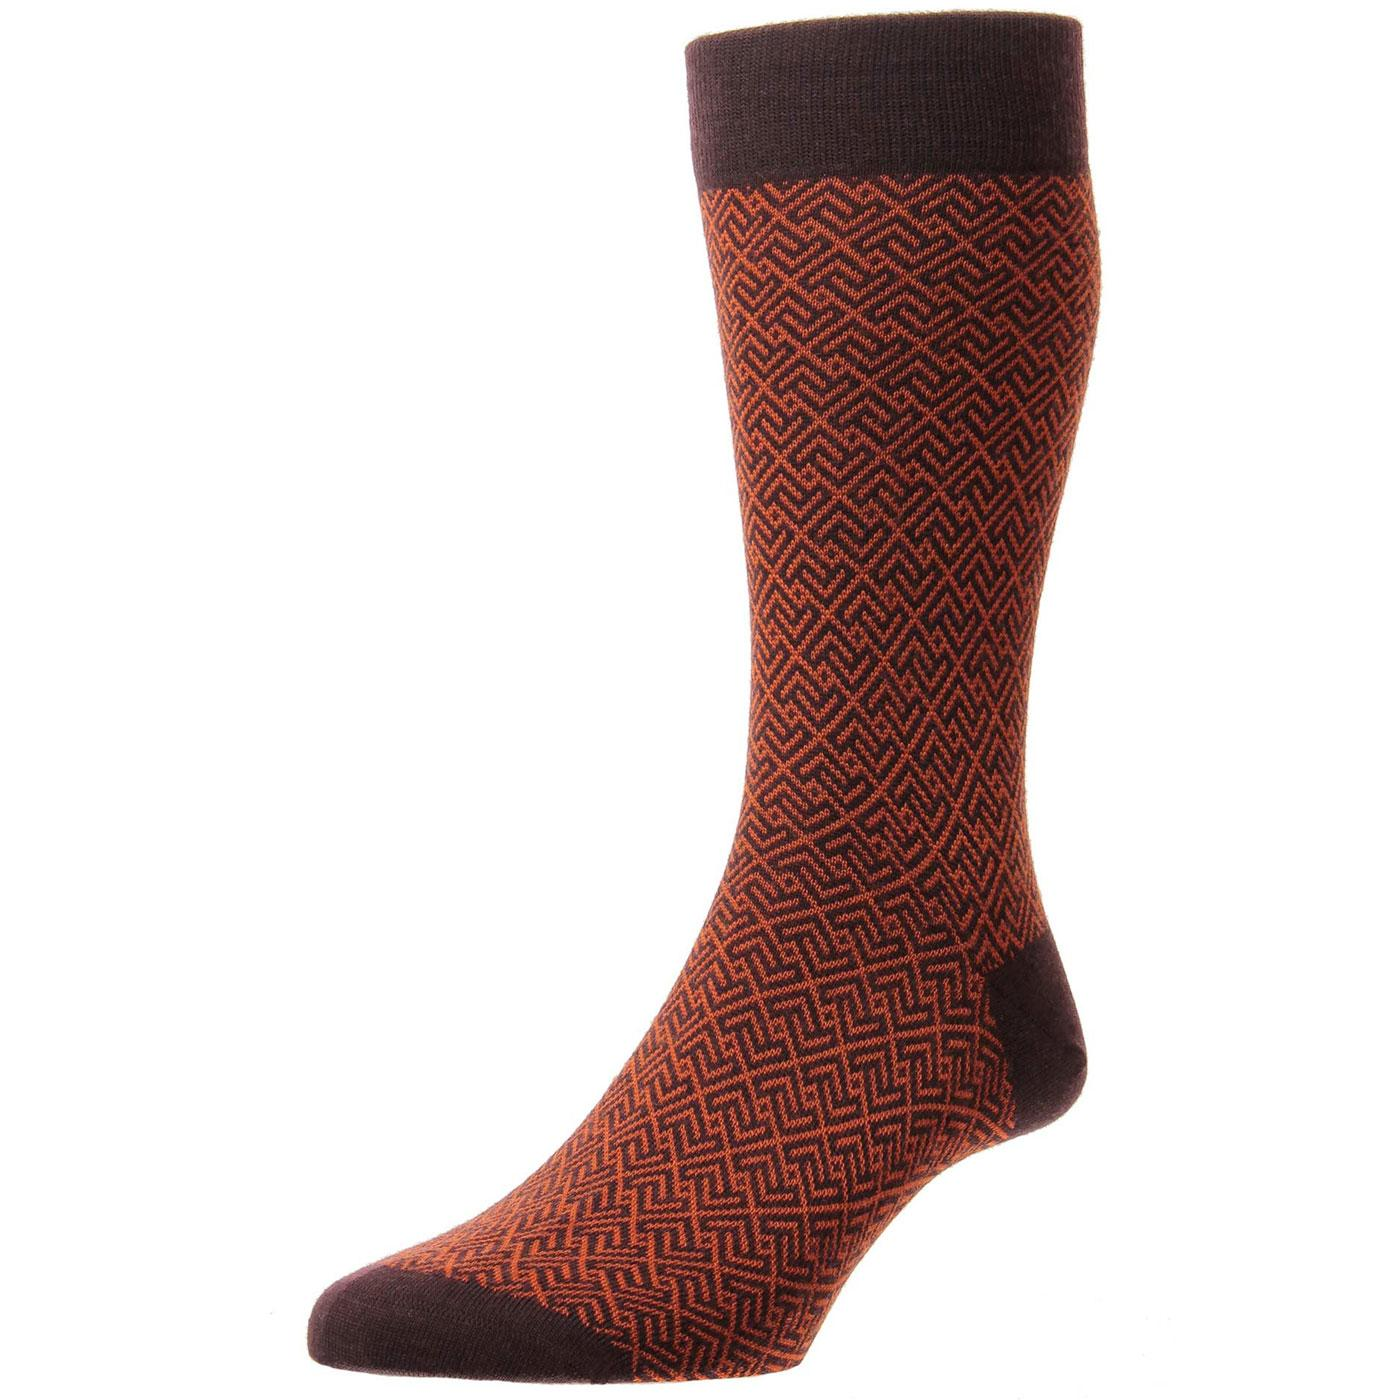 + Porter PANTHERELLA Men's Mod Pattern Socks M